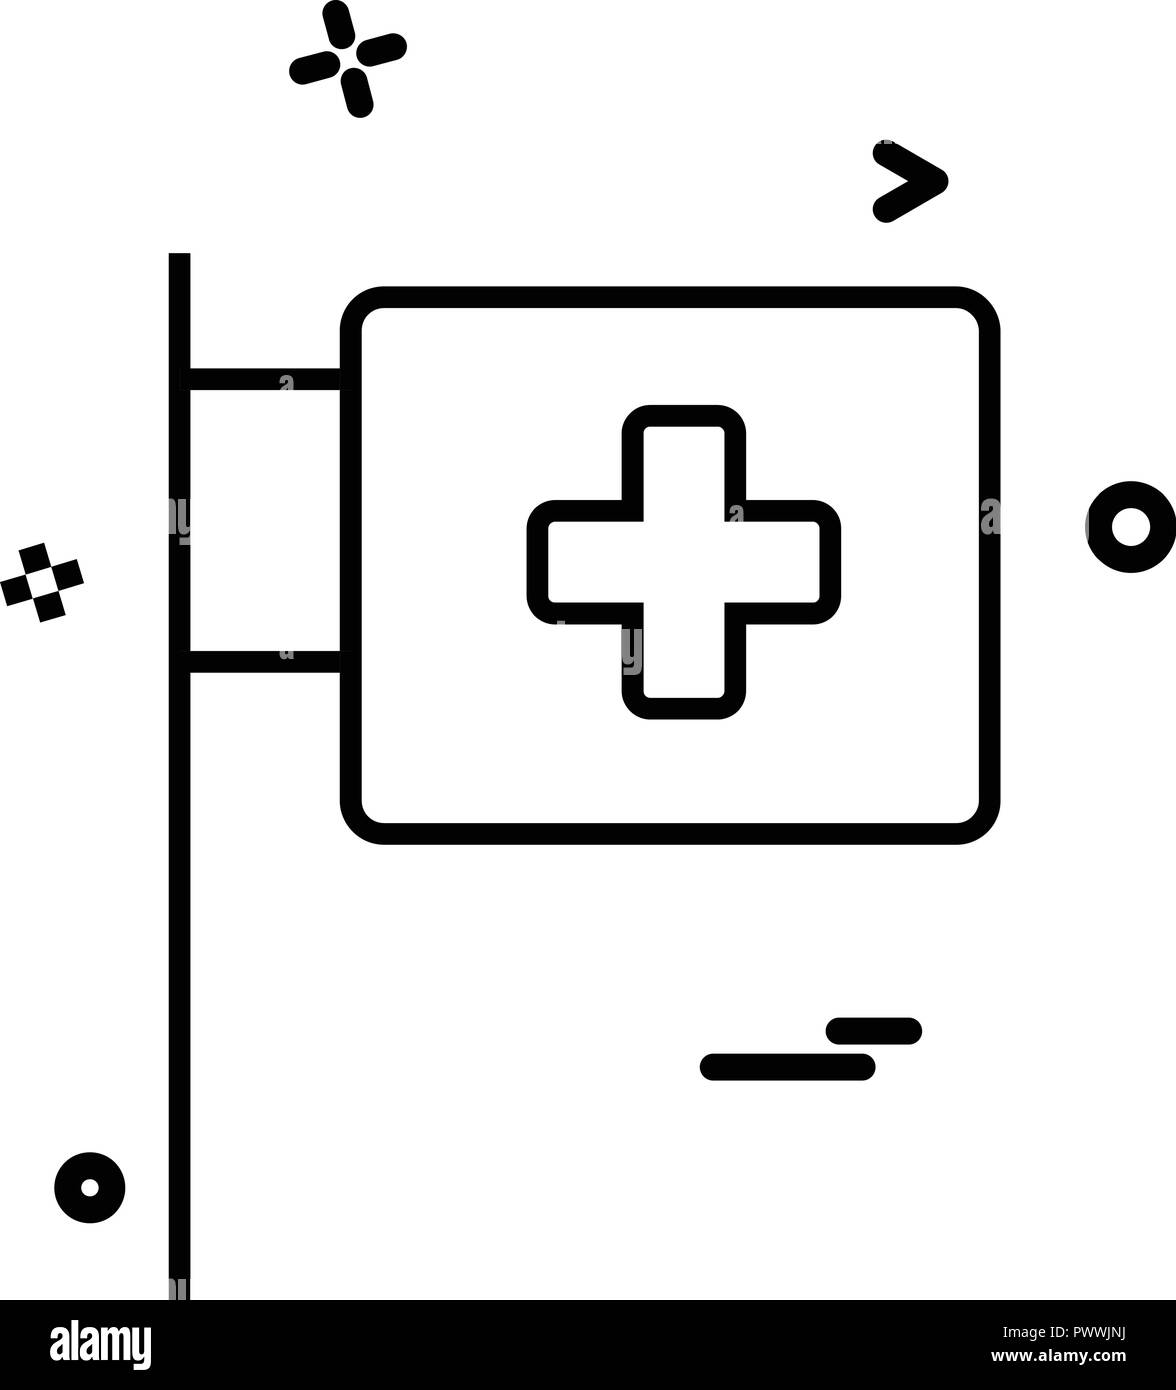 medical hospital flagpole icon vector desige - Stock Image